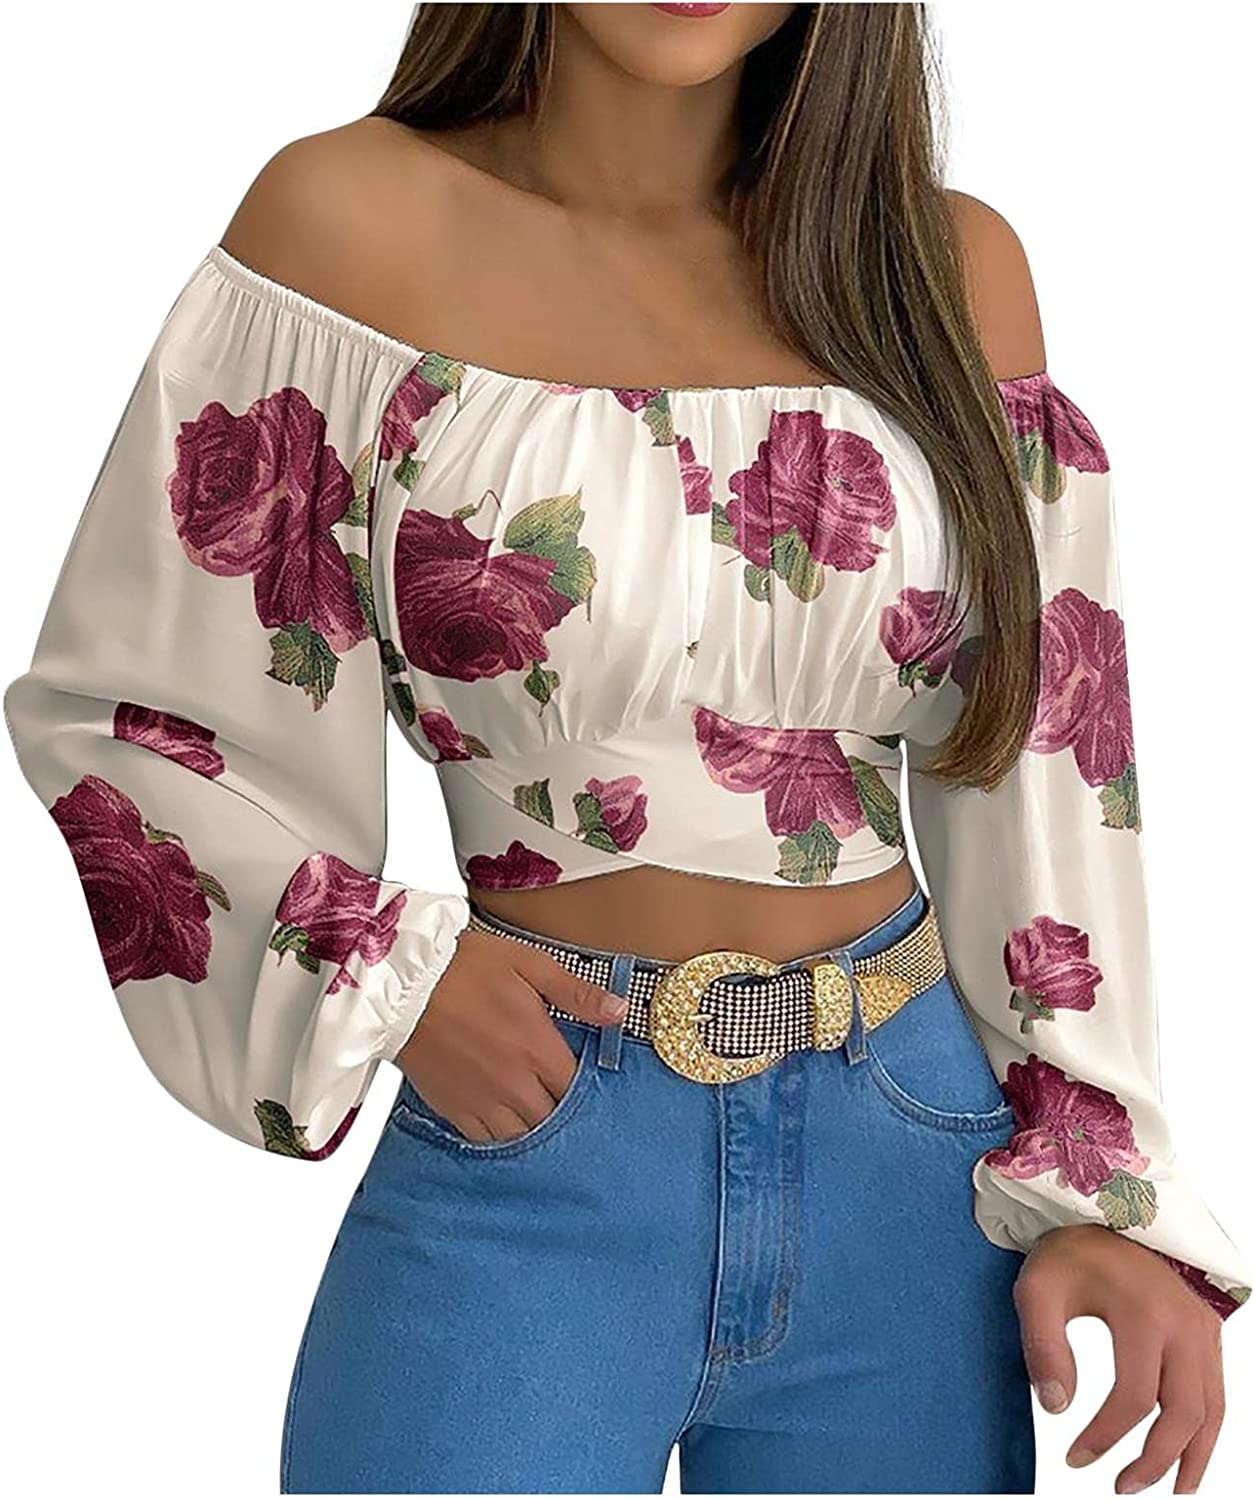 Crop Tops for Women Off Shoulder Lantern Sleeve Crop Shirt Sexy Solid Floral Print Blouse Strapless Ruched Tee